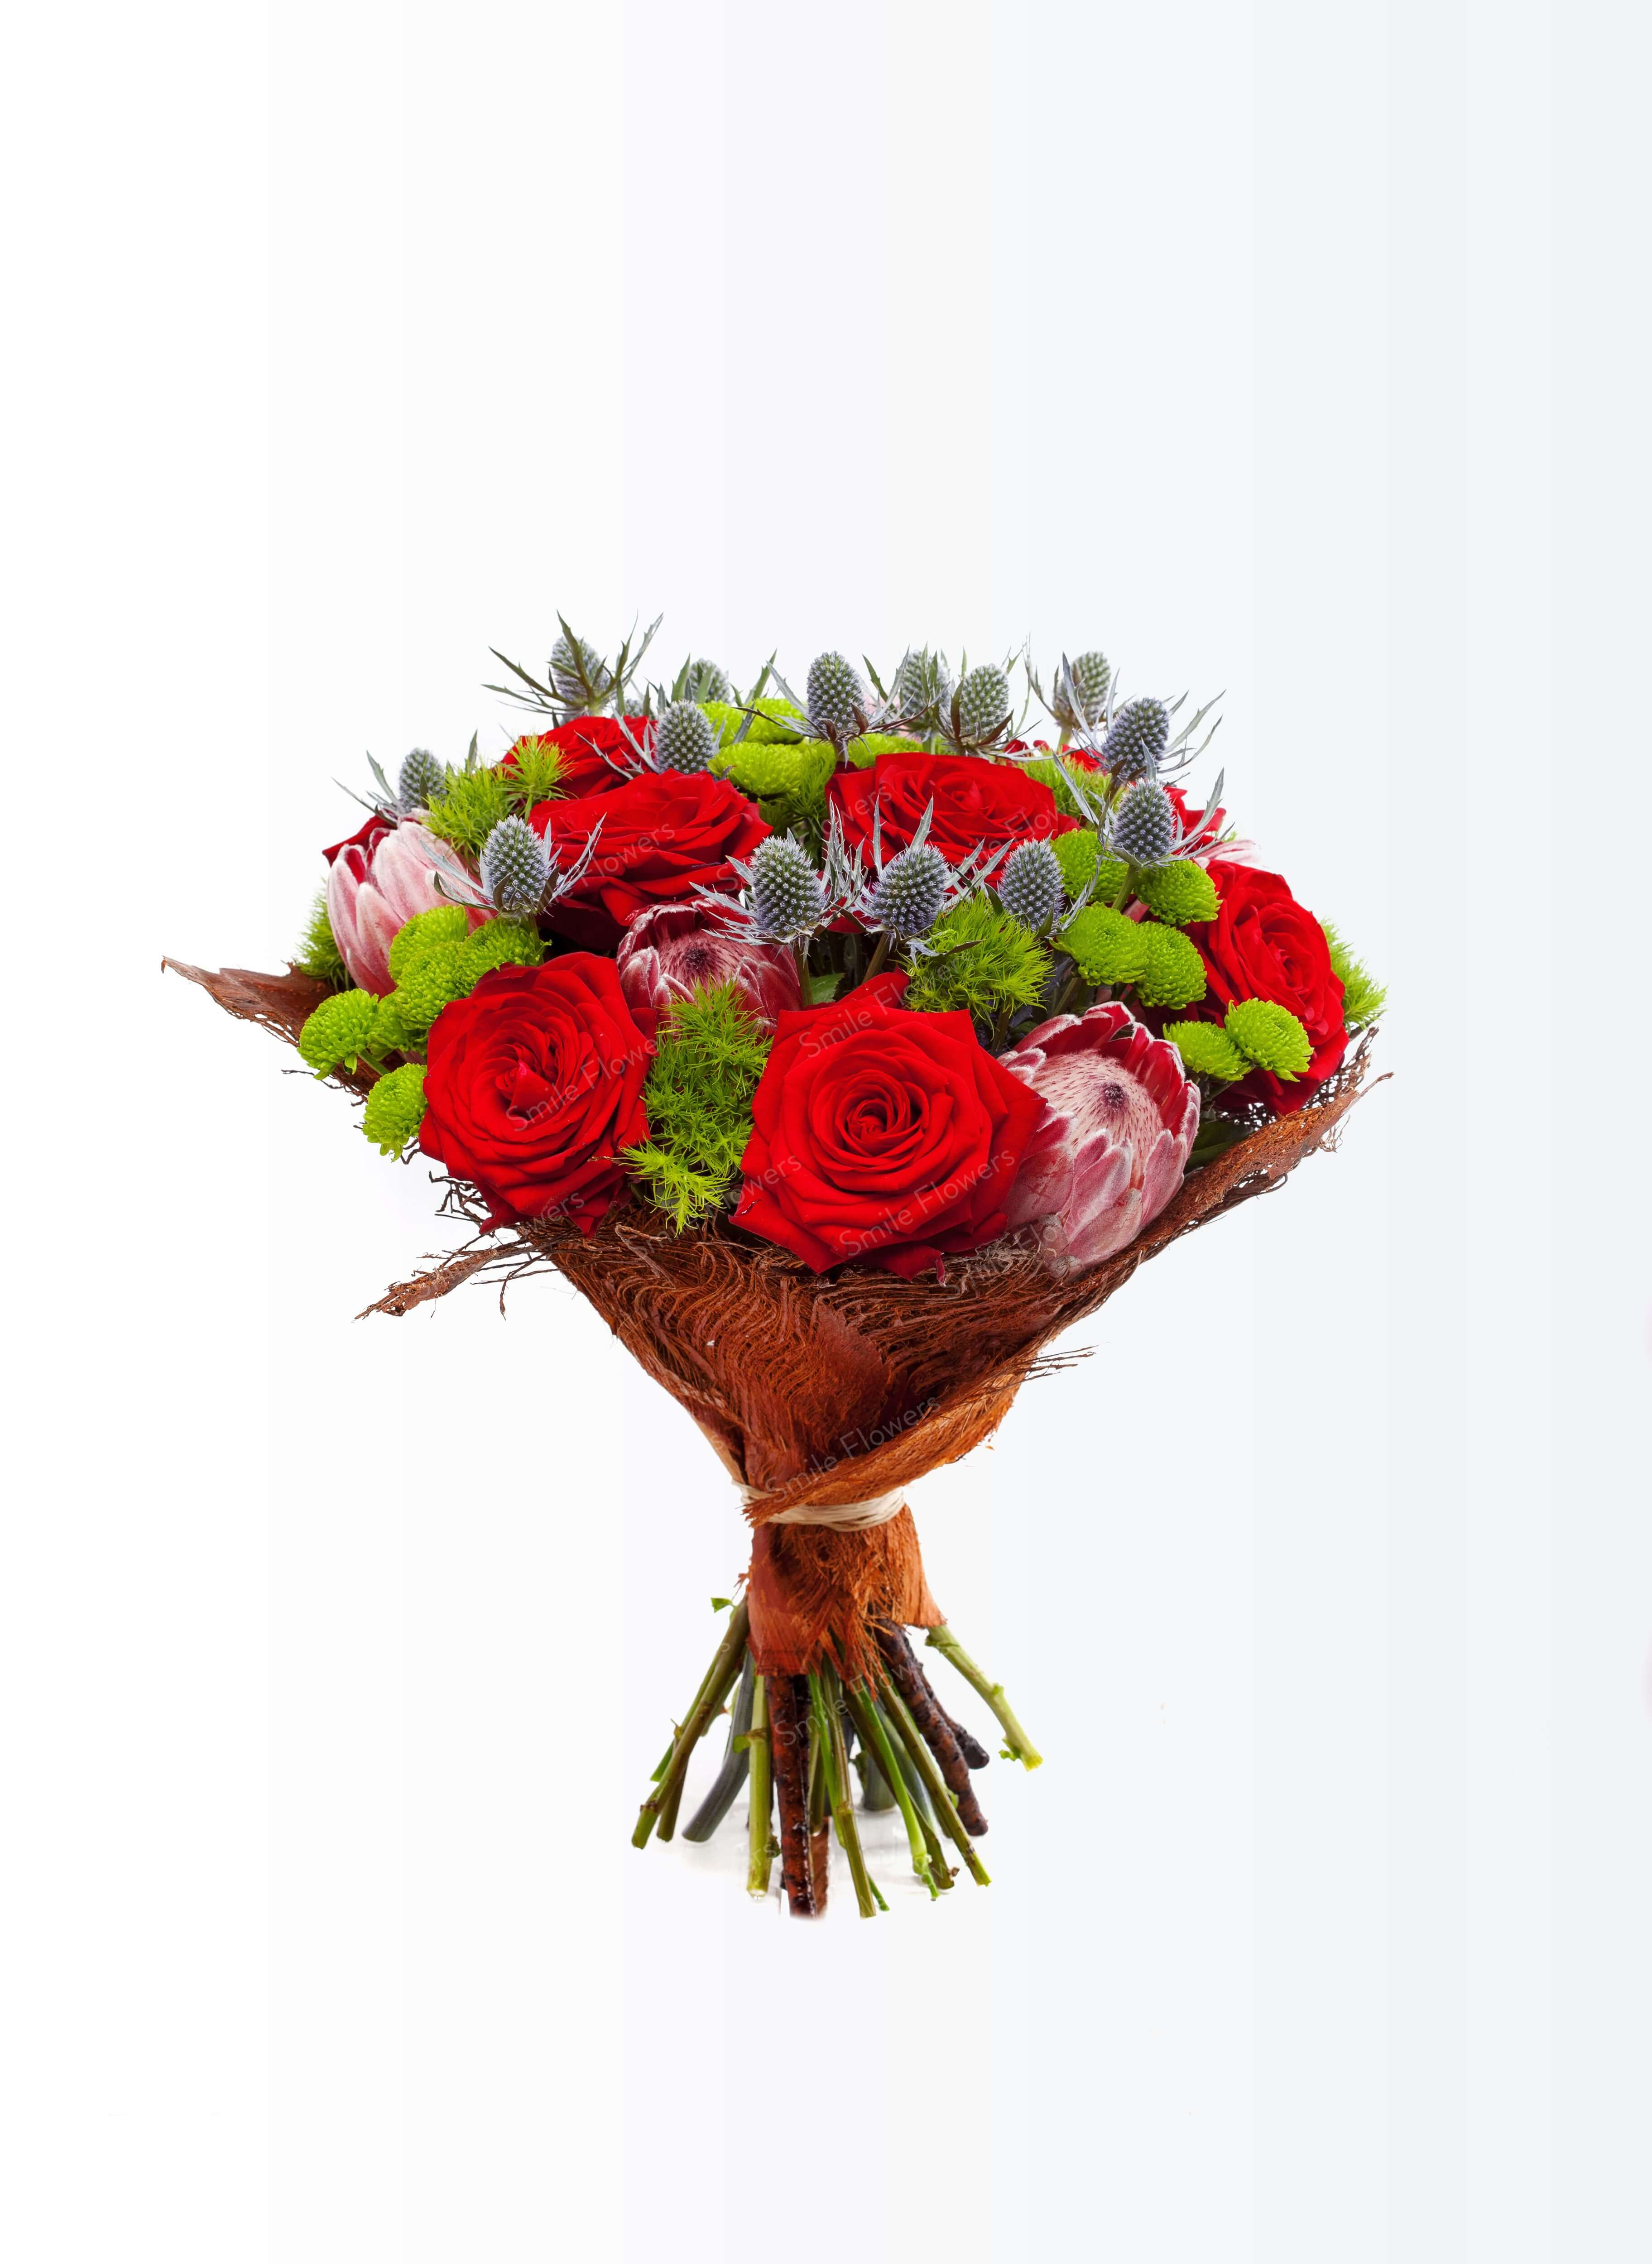 A Classical Flower Bouquet With Red Roses Ziedu Piegāde Riga Latvia